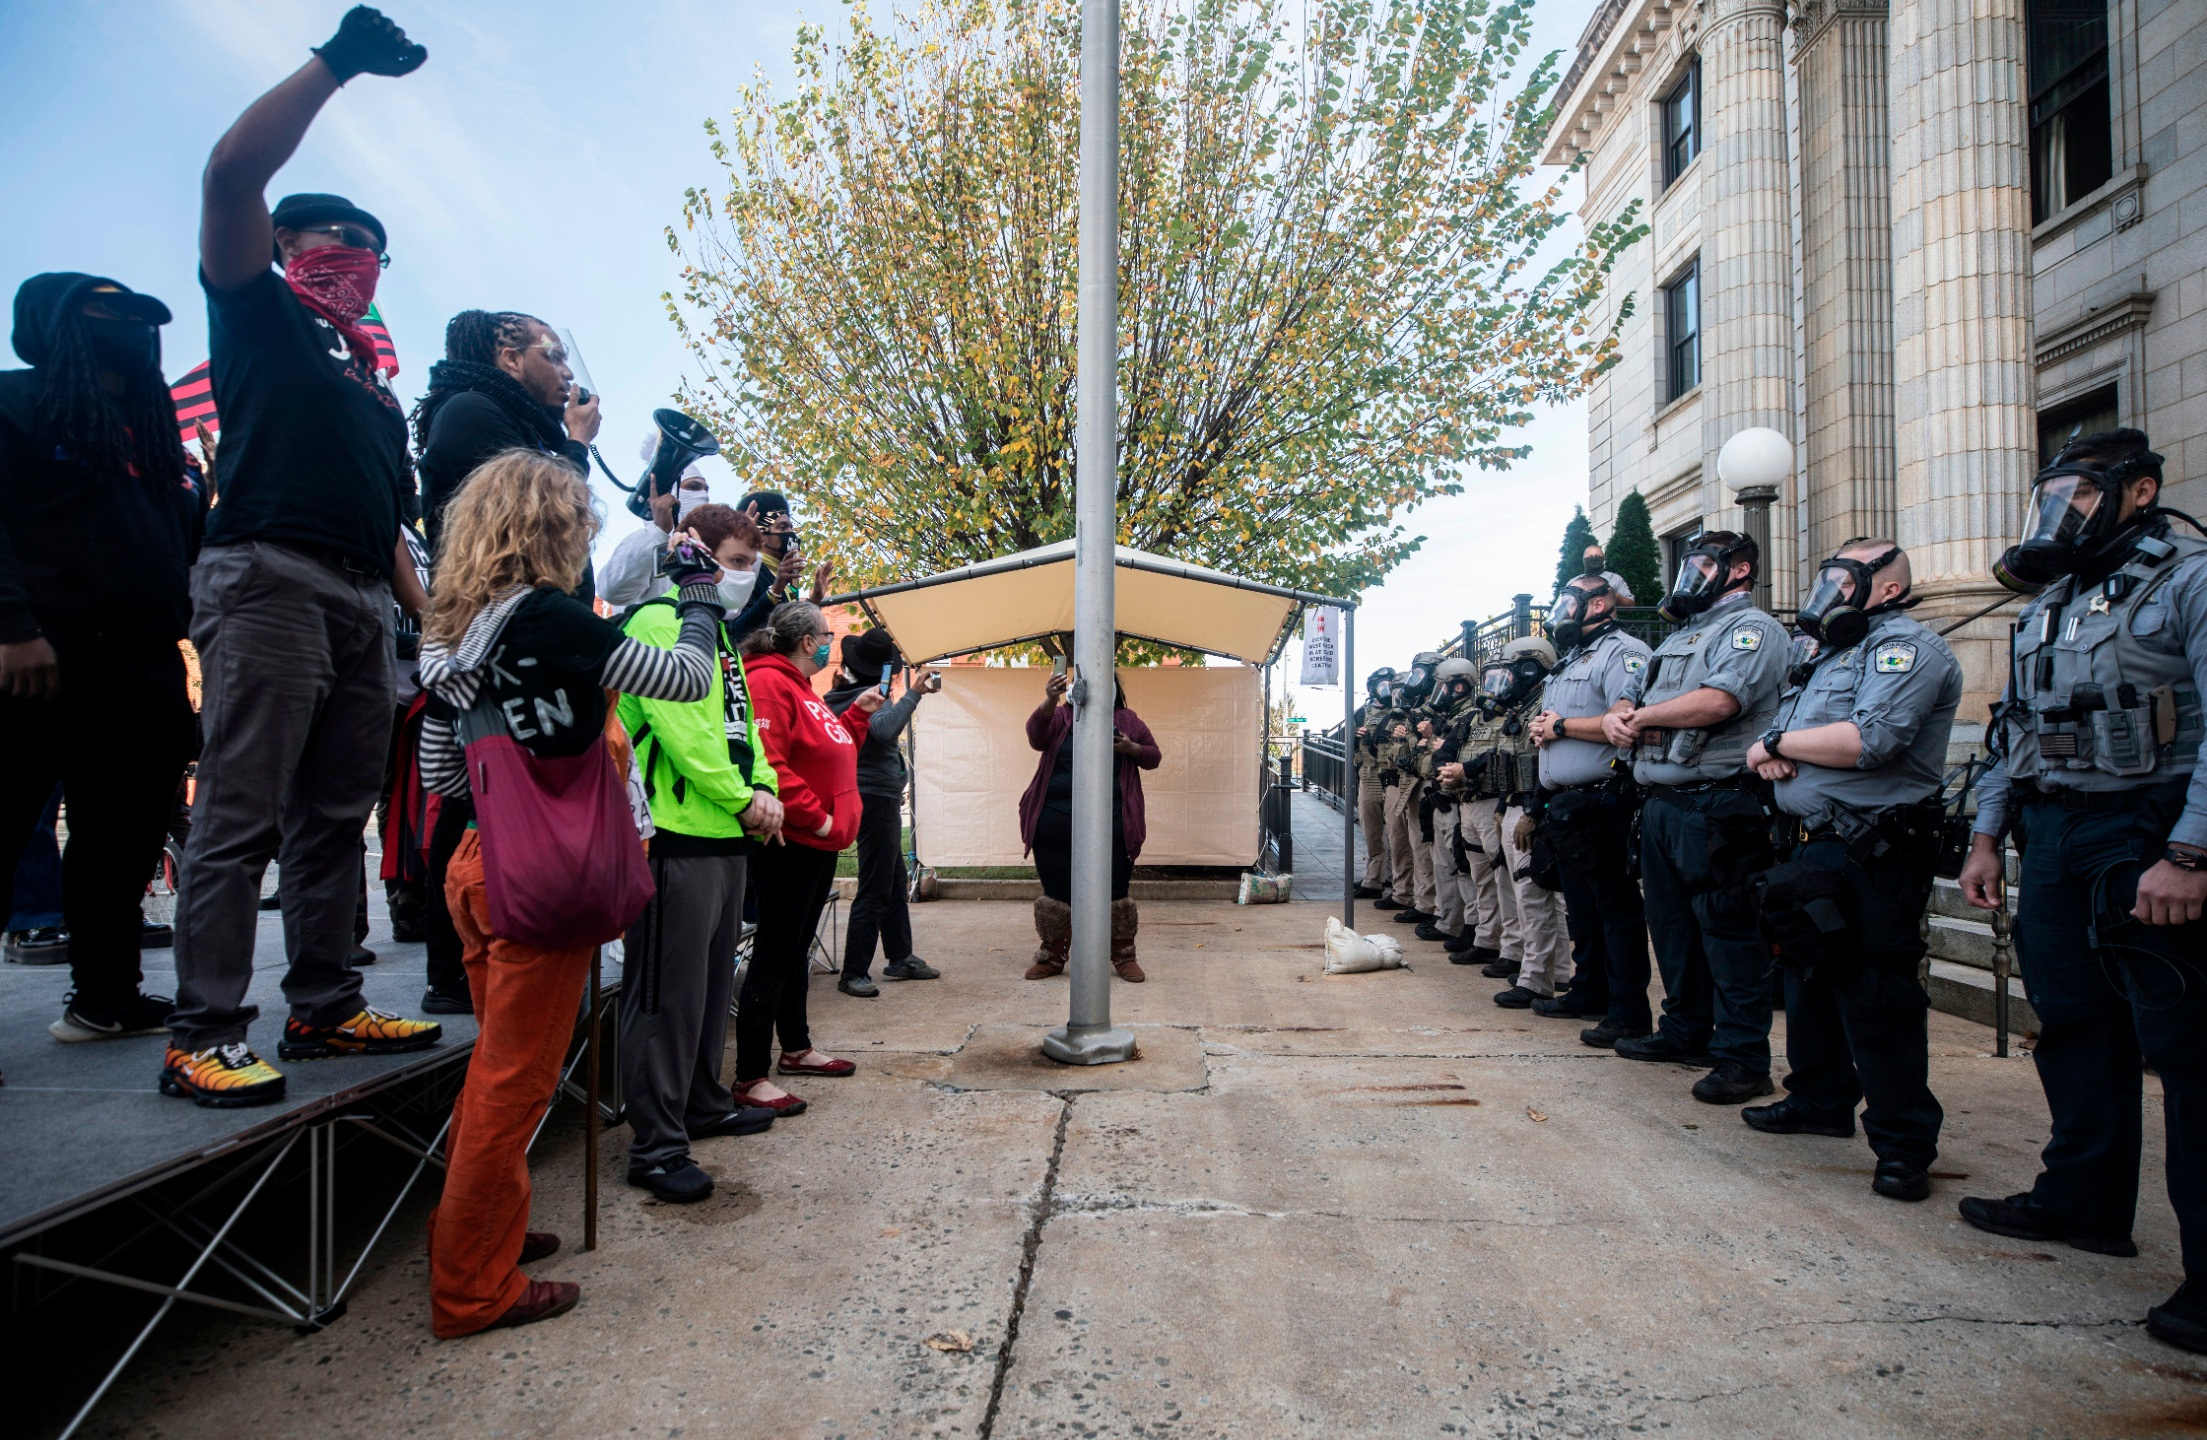 Protesters and Alamance County sheriff's deputies in riot gear face off in front of the courthouse in Graham, N.C. on Saturday, Oct. 31, 2020 before pepper spray was used and several people were arrested. (Julia Wall/The News & Observer via AP)